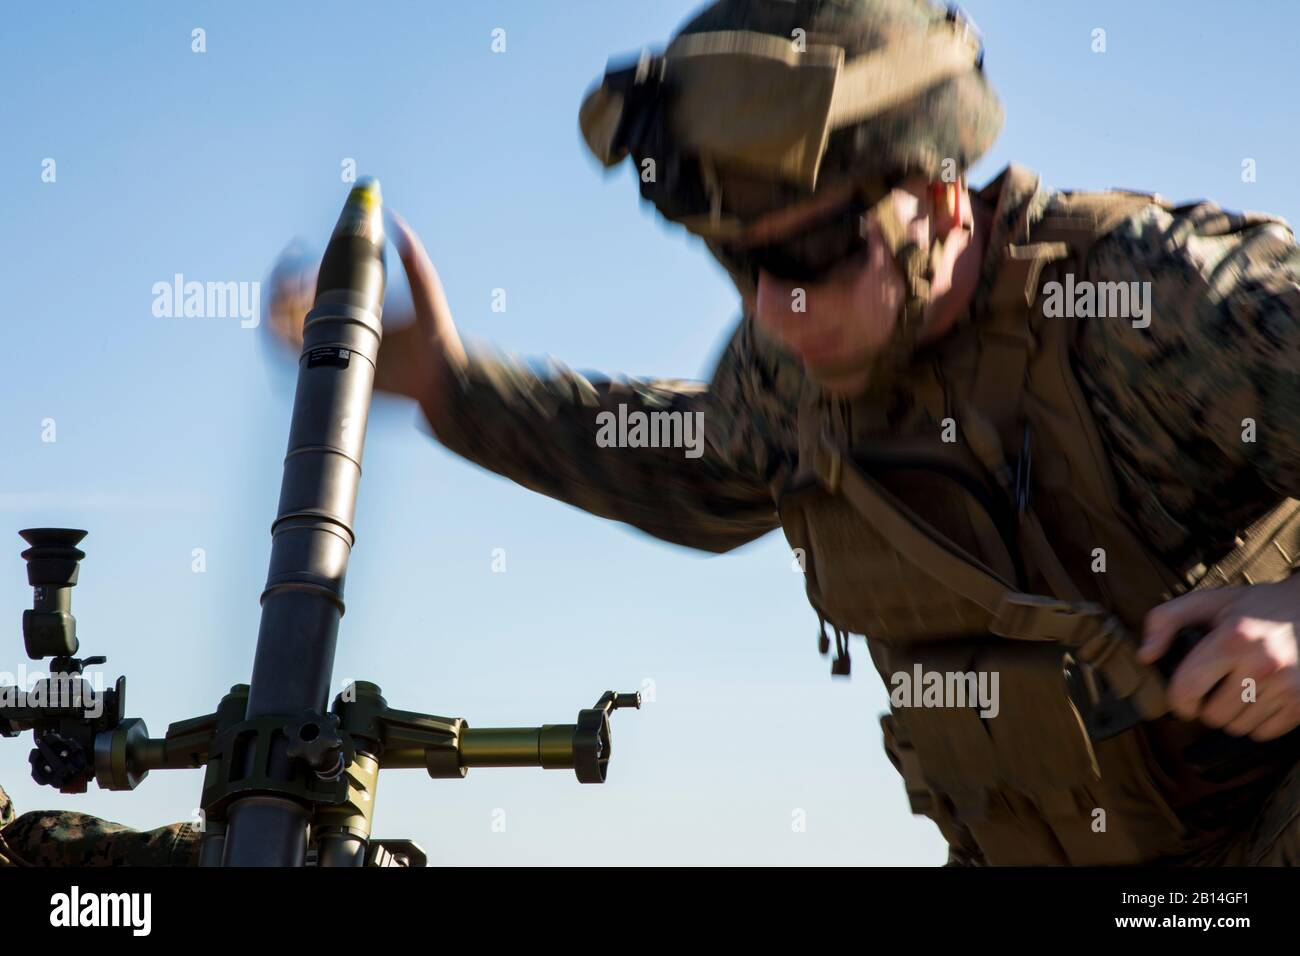 U.S. Marine Corps Lance Cpl. Dylan Sheperd, an assistant gunner, loads a round into an M224 60mm mortar system during a live-fire mortar range at Camp Lejeune, N.C., Dec. 19, 2017. The unit used the hand-held, direct lay and direct alignment methods to engage targets 1,500 meters away. This provided Marines with India Company, 3rd Battalion, 6th Marine Regiment, 2nd Marine Division the opportunity to increase their proficiency and familiarization with the weapon system. (U.S. Marine Corps photo by Cpl. Aaron Henson) Stock Photo